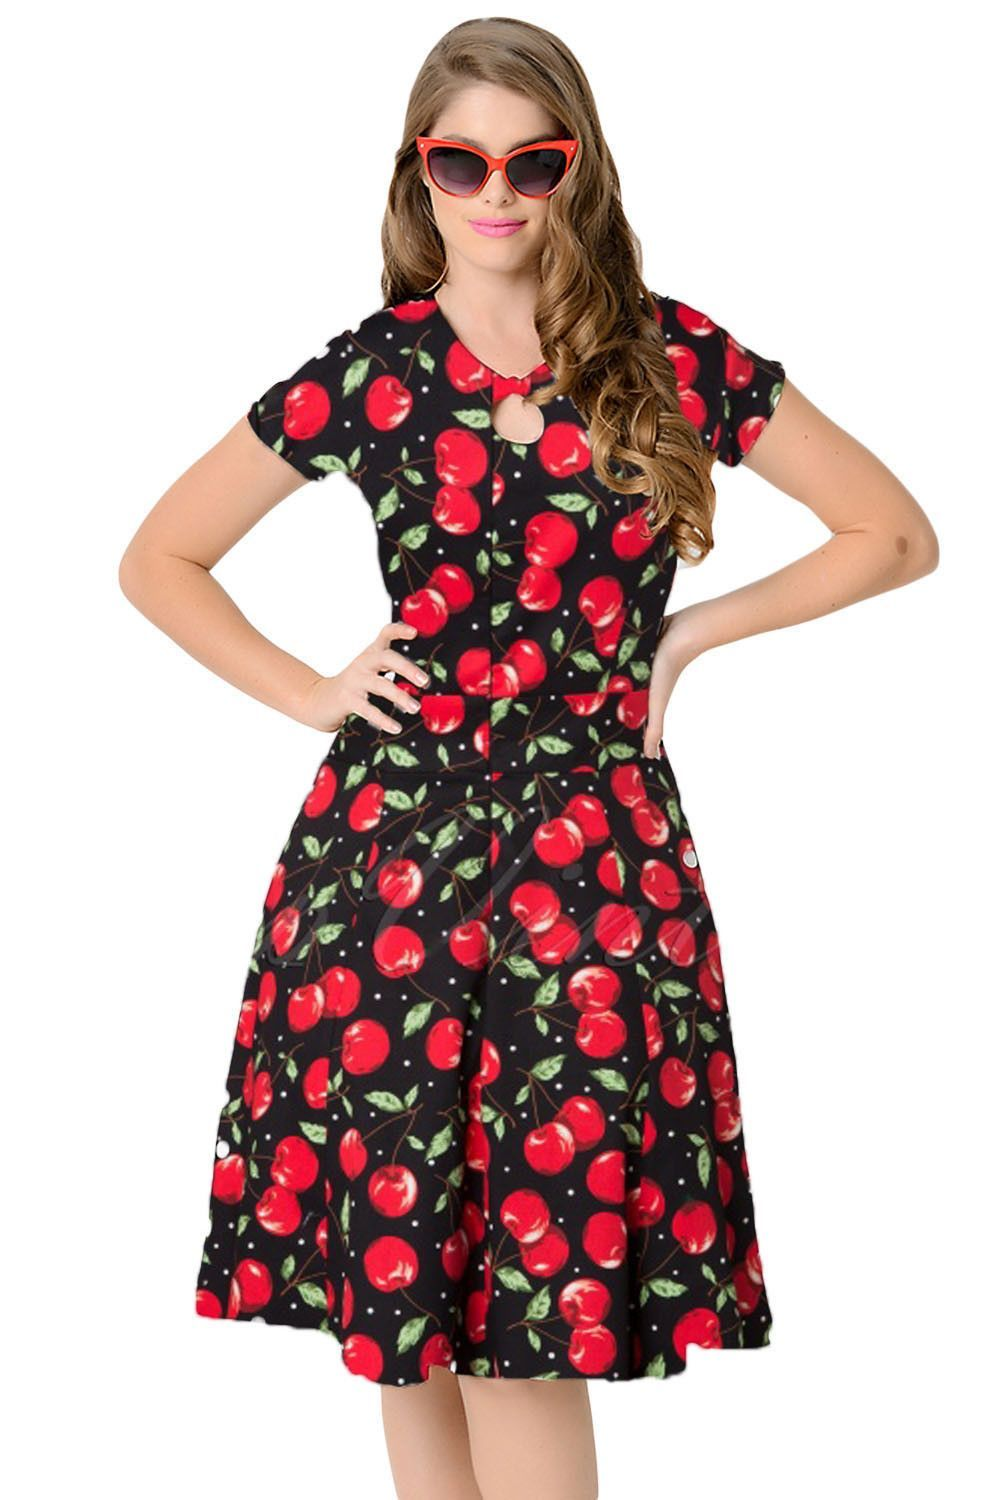 Unique vintage s style cherry short sleeves swing dress s